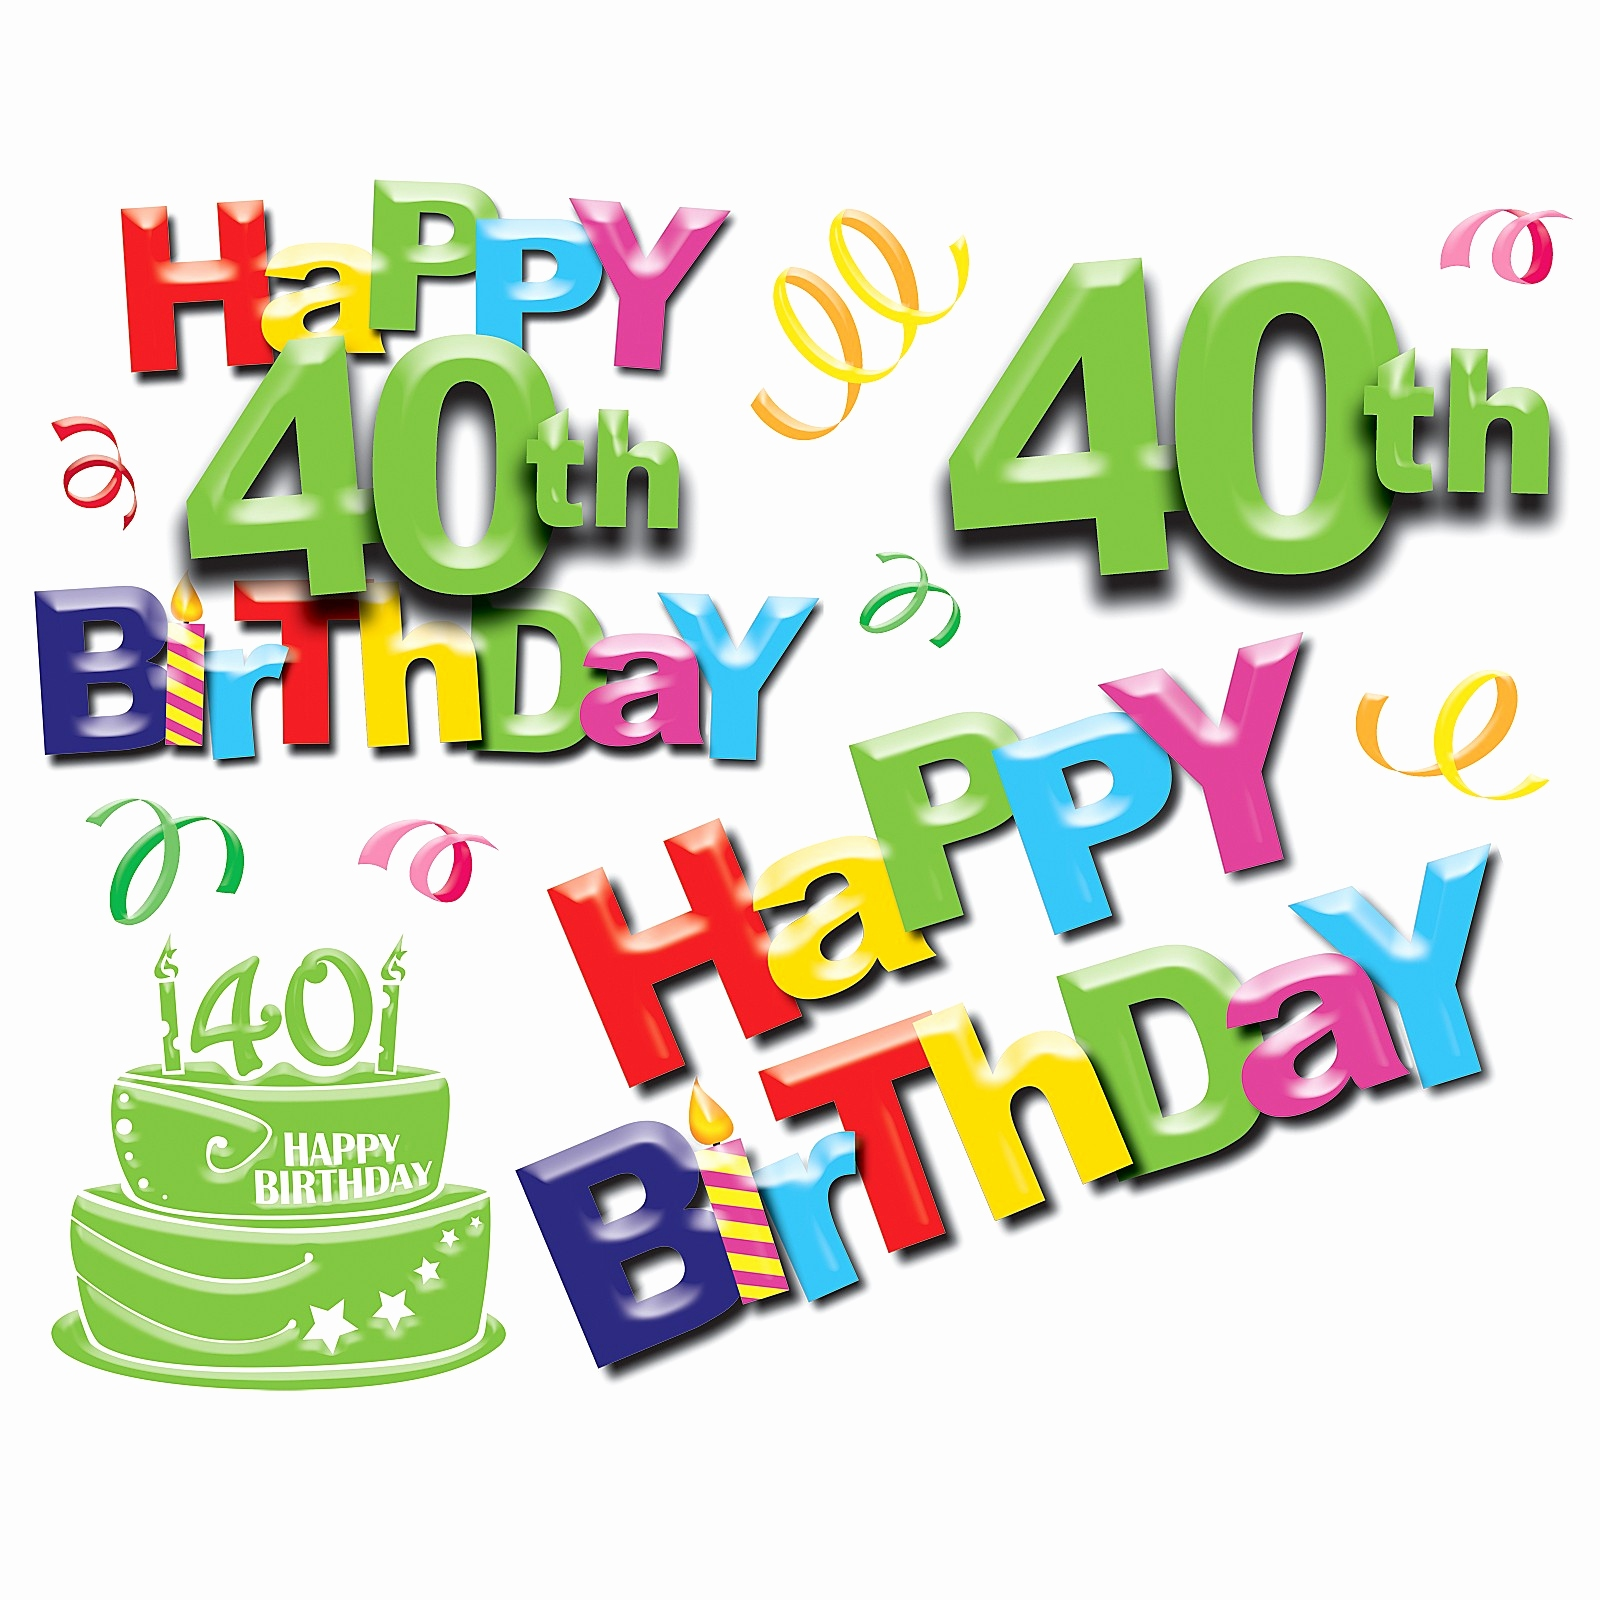 1600x1600 Free Funny Interactive Birthday Cards Awesome Happy 40th